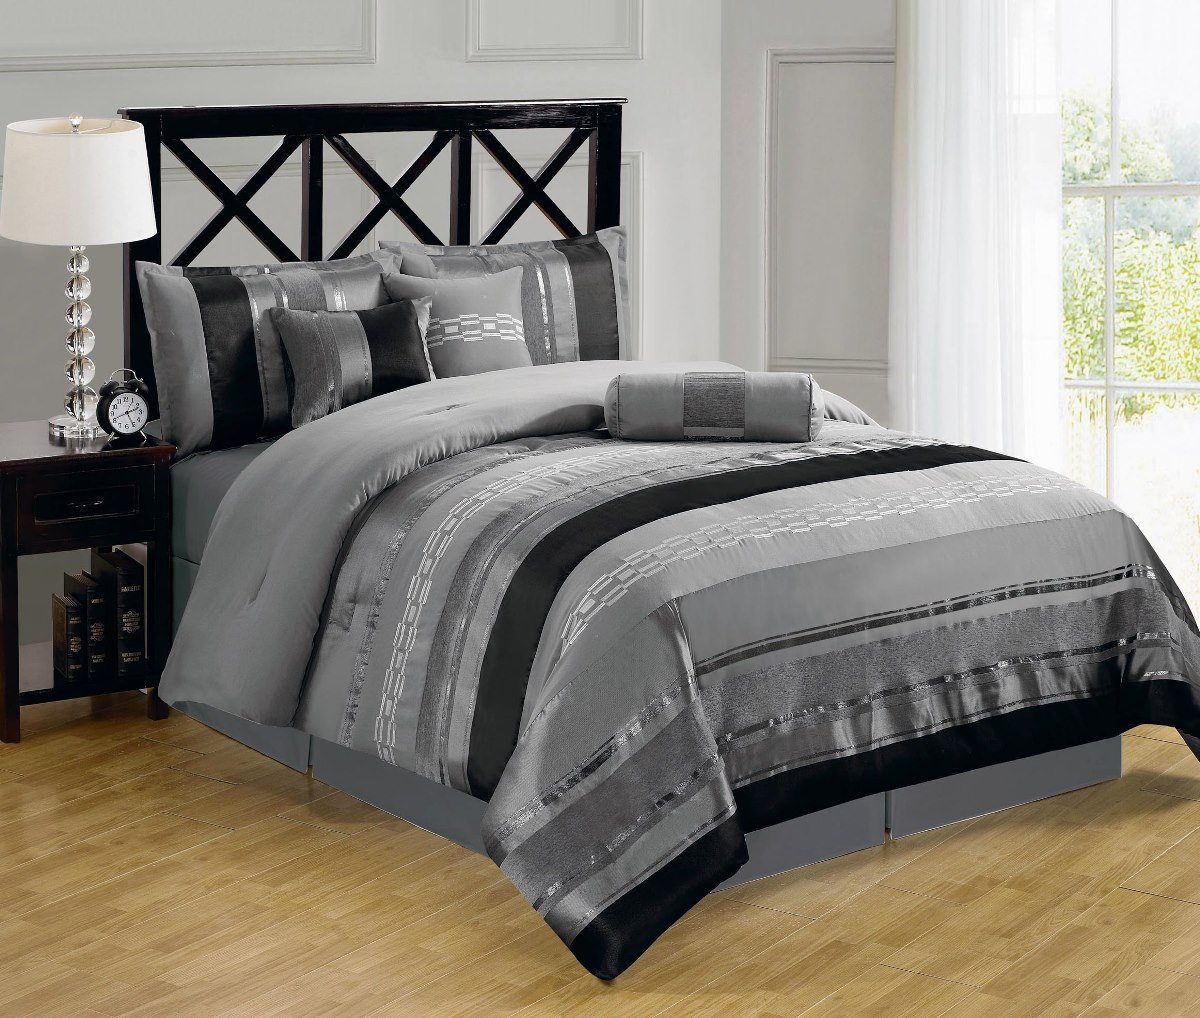 Have Perfect California King Bed Comforter Set in Your Room | HomesFeed